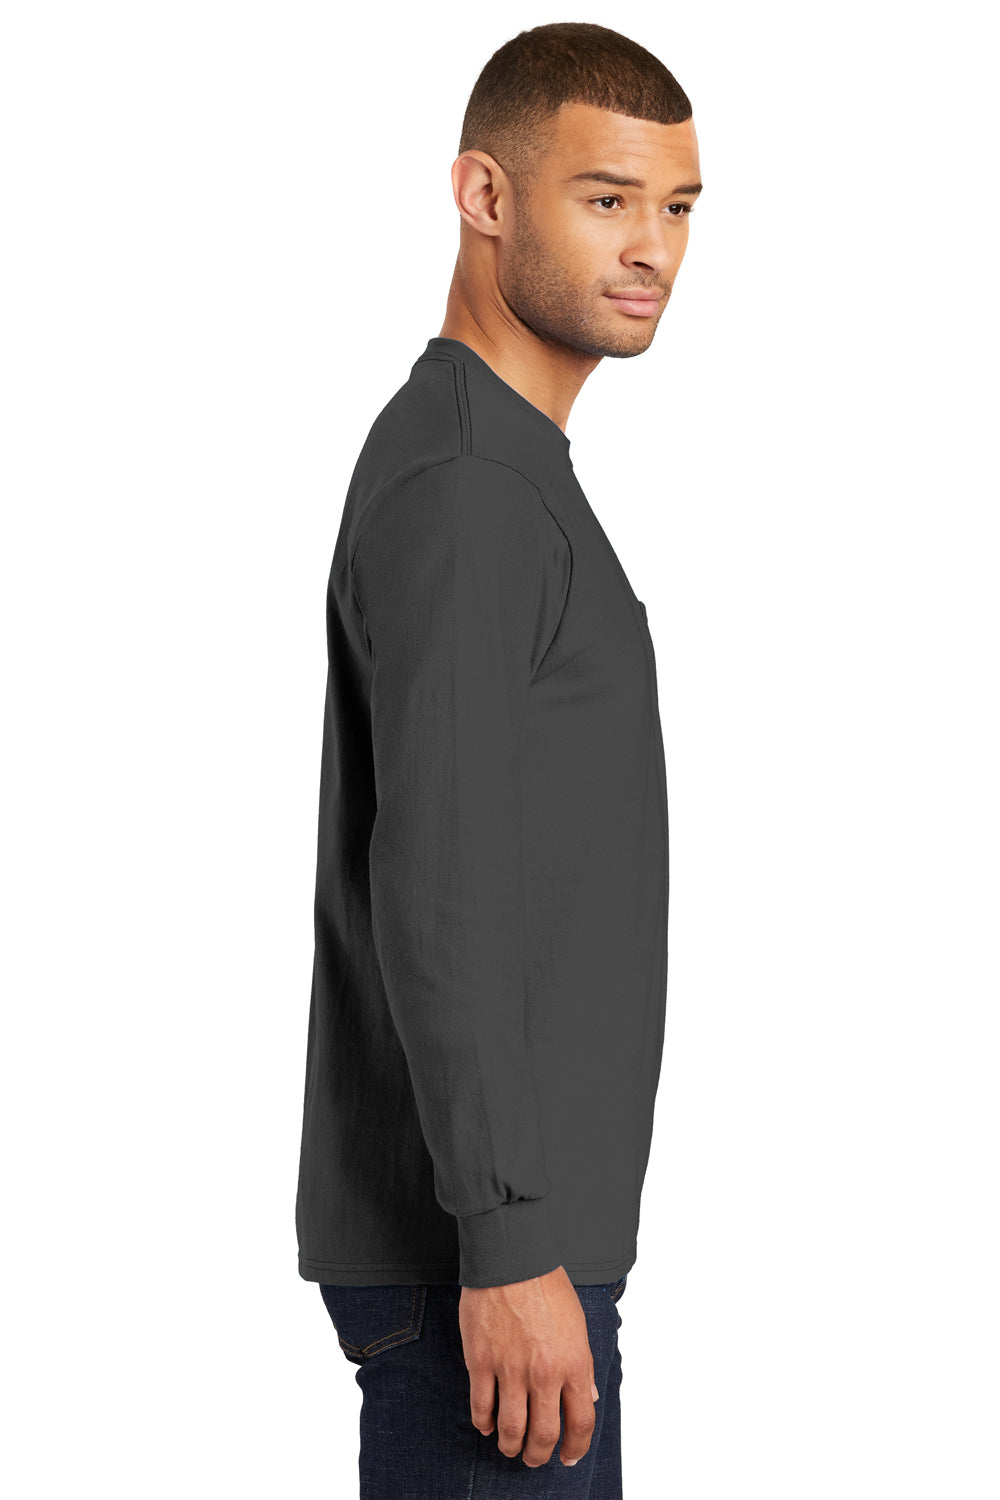 Port & Company PC61LSP Mens Essential Long Sleeve Crewneck T-Shirt w/ Pocket Charcoal Grey Side